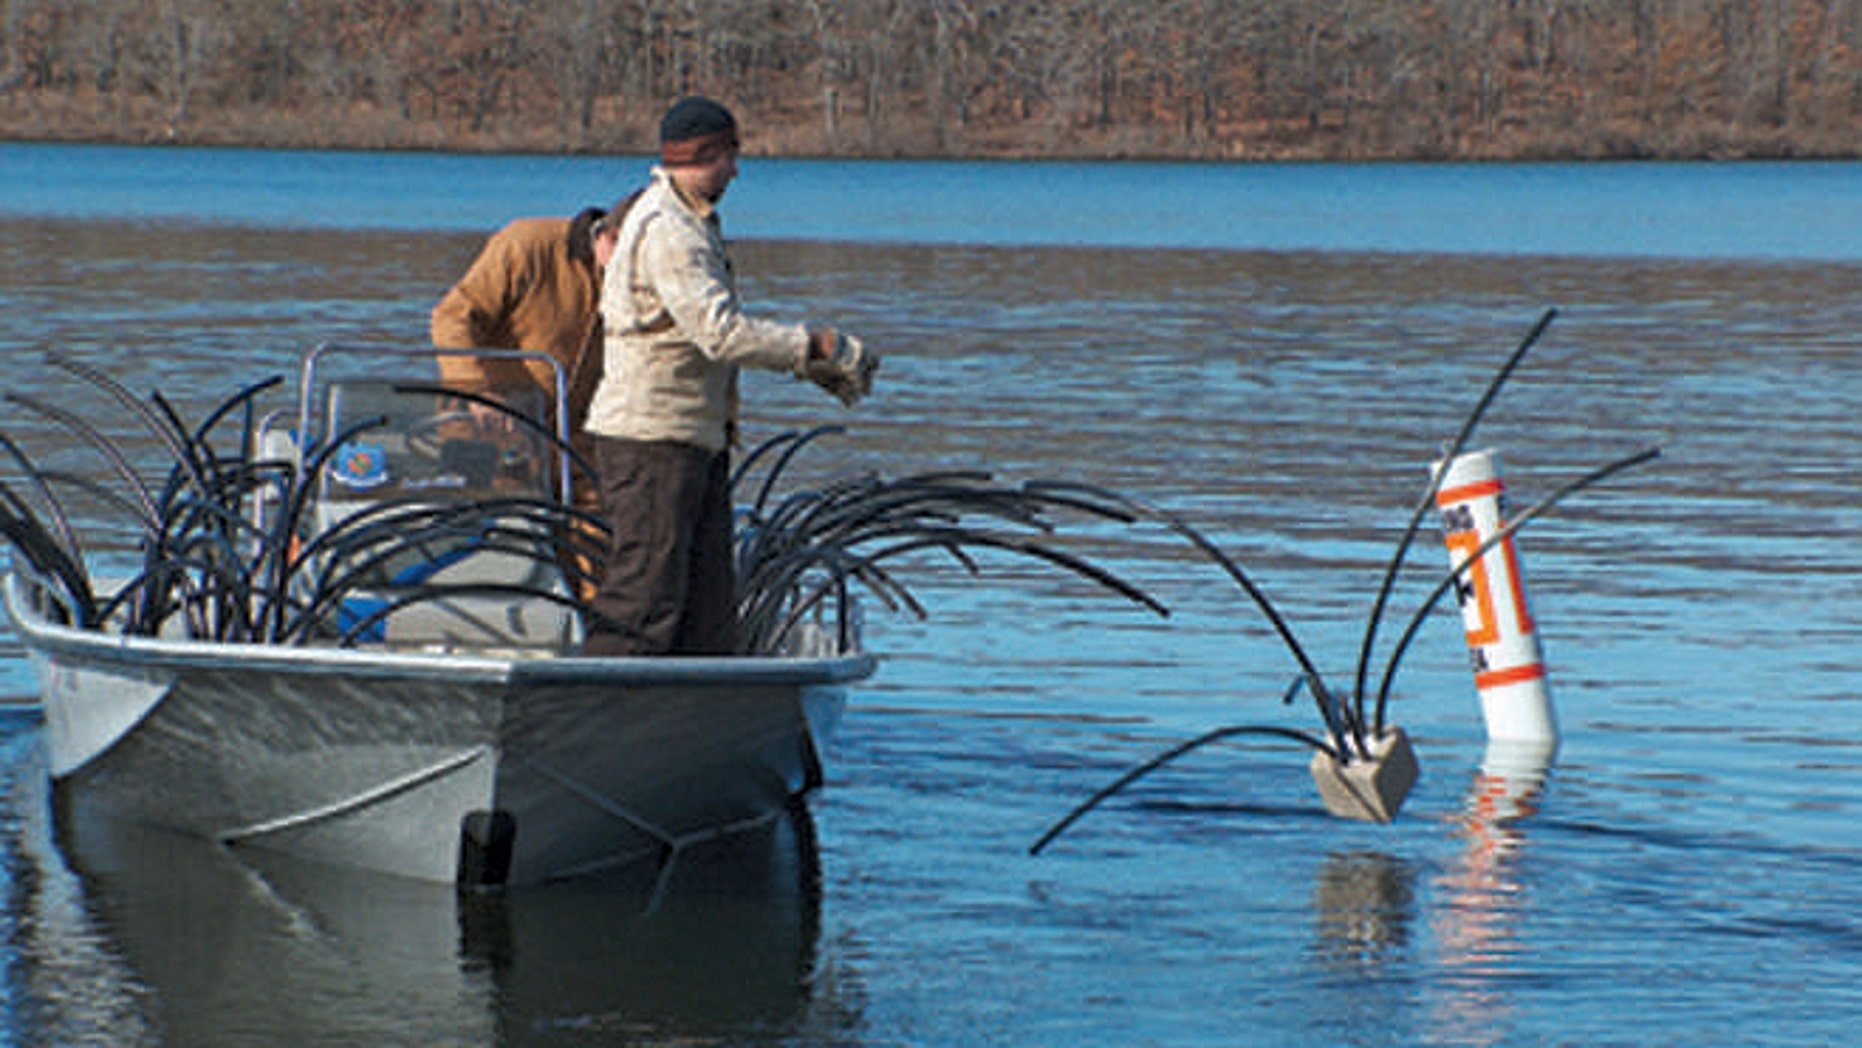 """Debris from the recent tornado that swept through Oklahoma is being put to use by state conservation officials, who are submerging it in lakes to form """"fish attractors."""""""